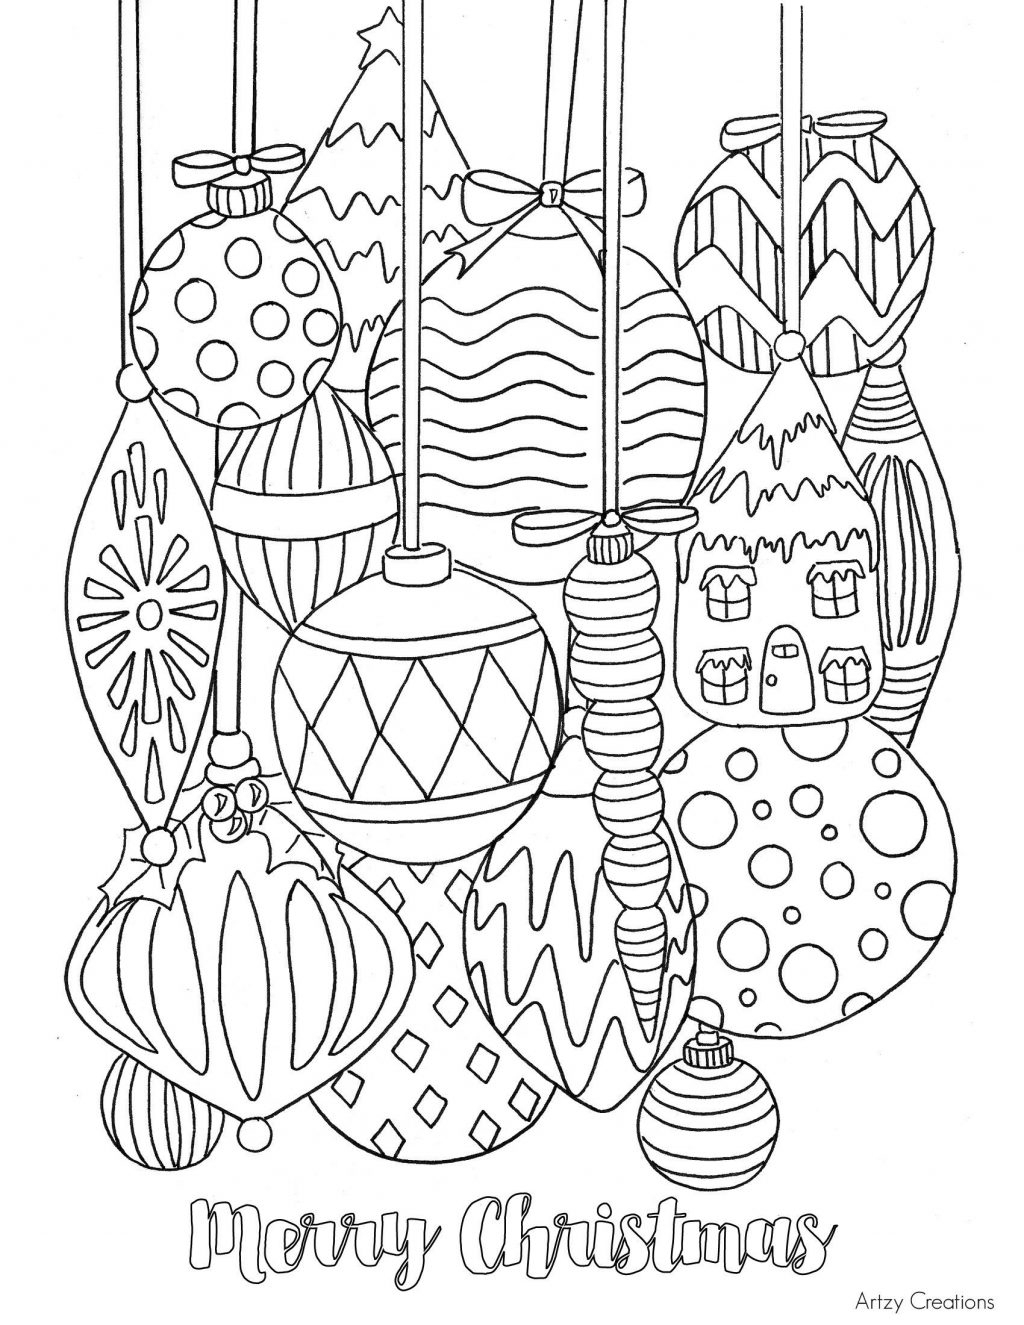 Coloring Pages ~ Printableristmas Coloring Pages For Adults Free - Free Printable Christmas Coloring Pages And Activities